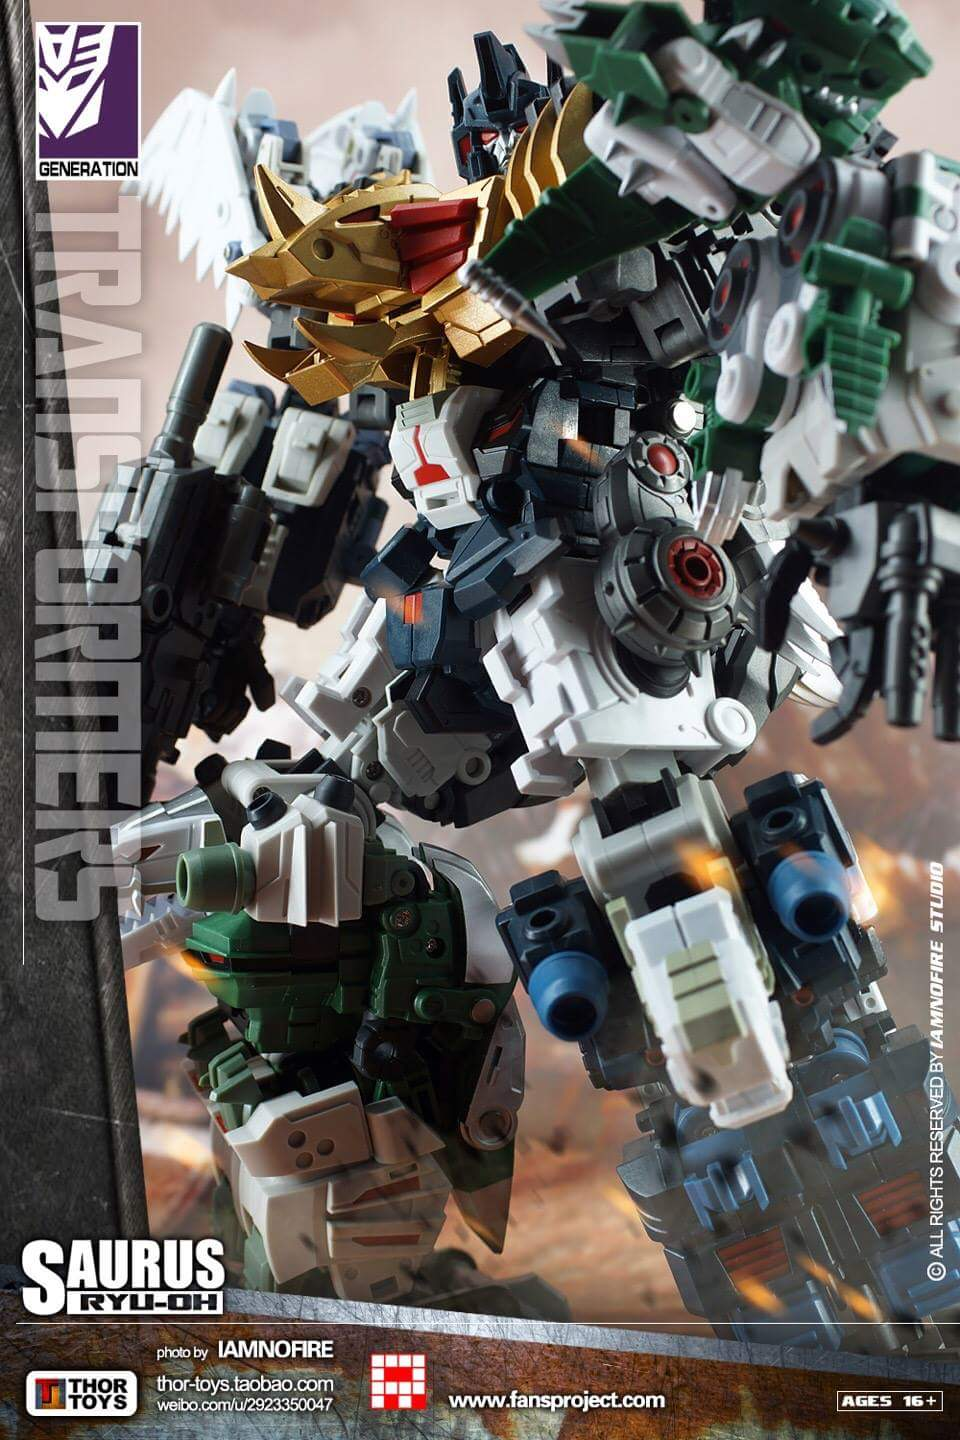 [FansProject] Produit Tiers - Jouet Saurus Ryu-oh aka Dinoking (Victory) | Monstructor (USA) - Page 2 WCglFBp0